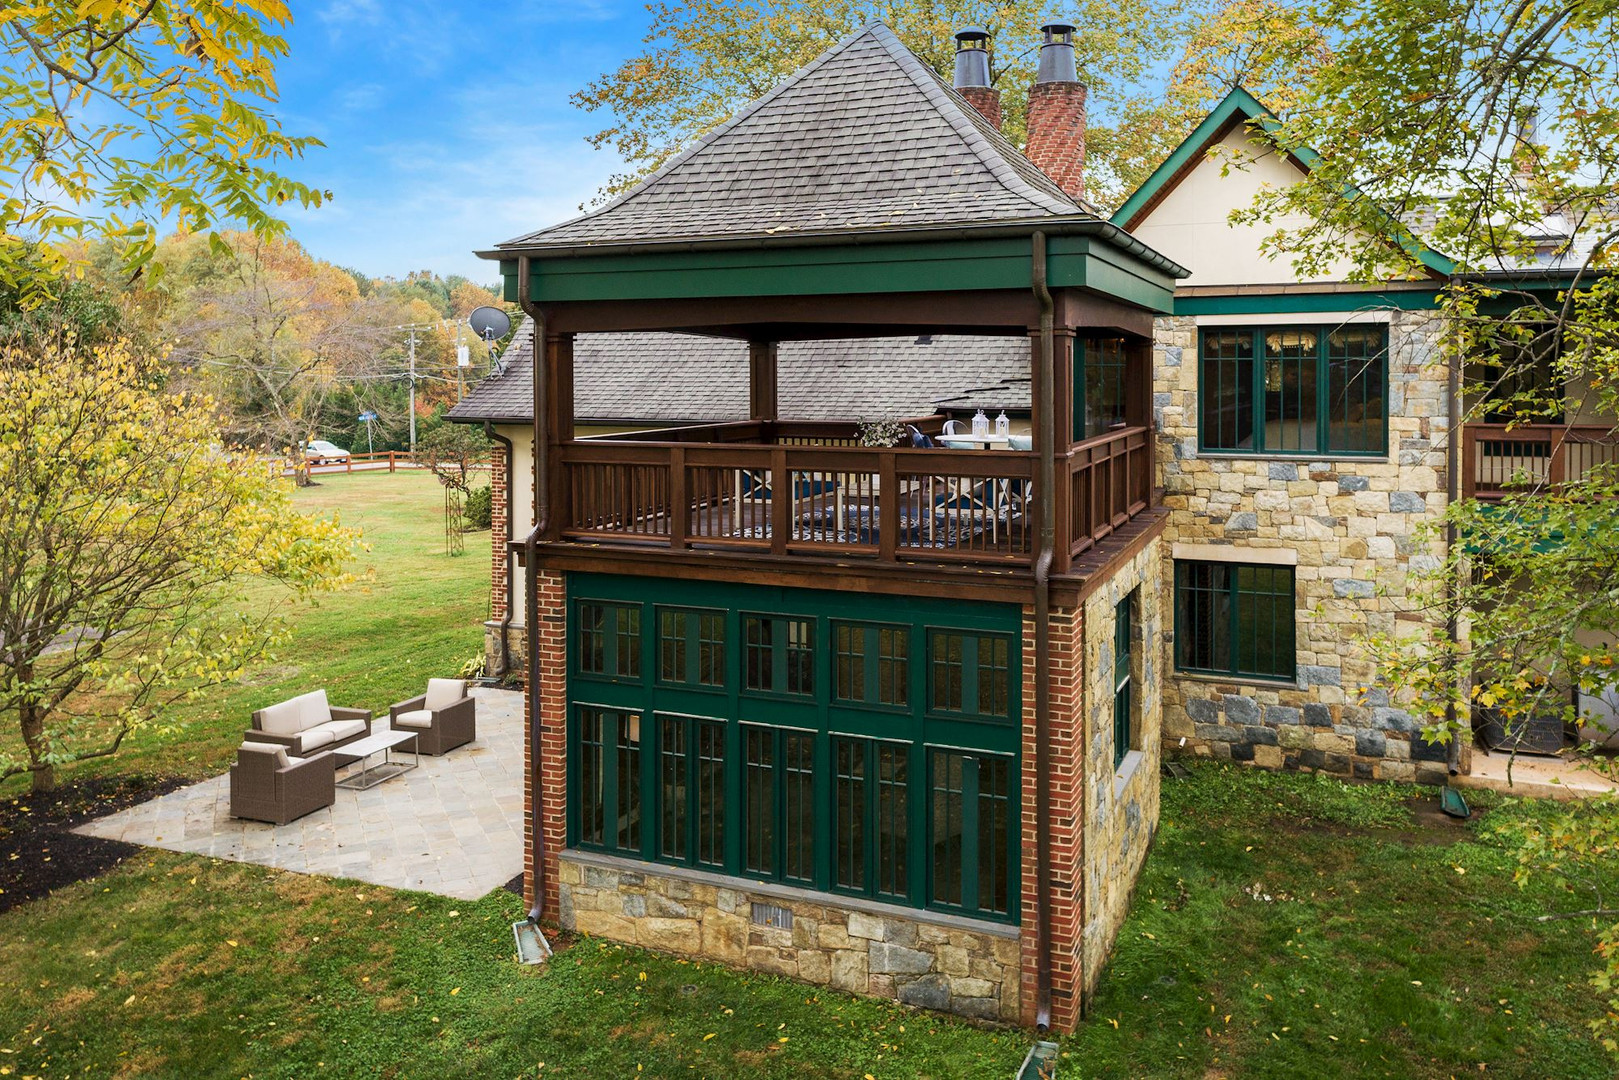 Owner's Suite Deck and Sunroom/OfficeOwner's Suite Deck and Sunroom/Office